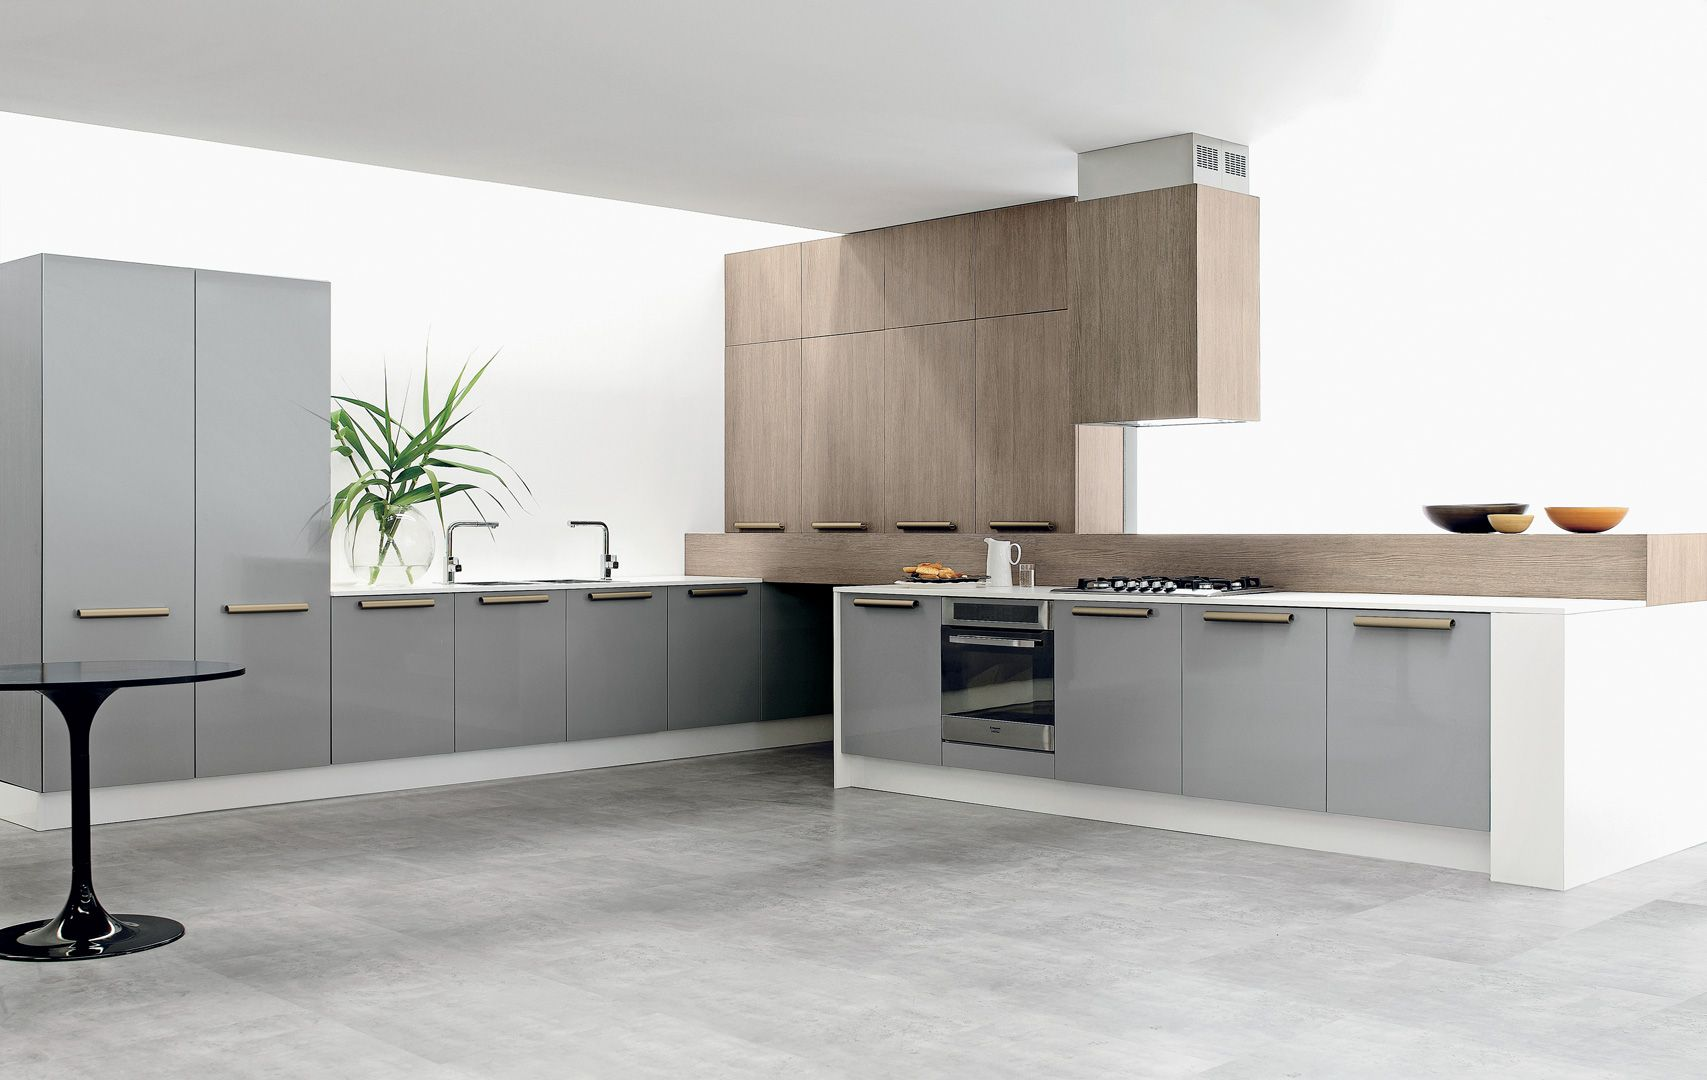 The Penelope Collection Aran Italian Kitchens Italian Kitchen Cabinets Kitchen Collection Kitchen Cabinets